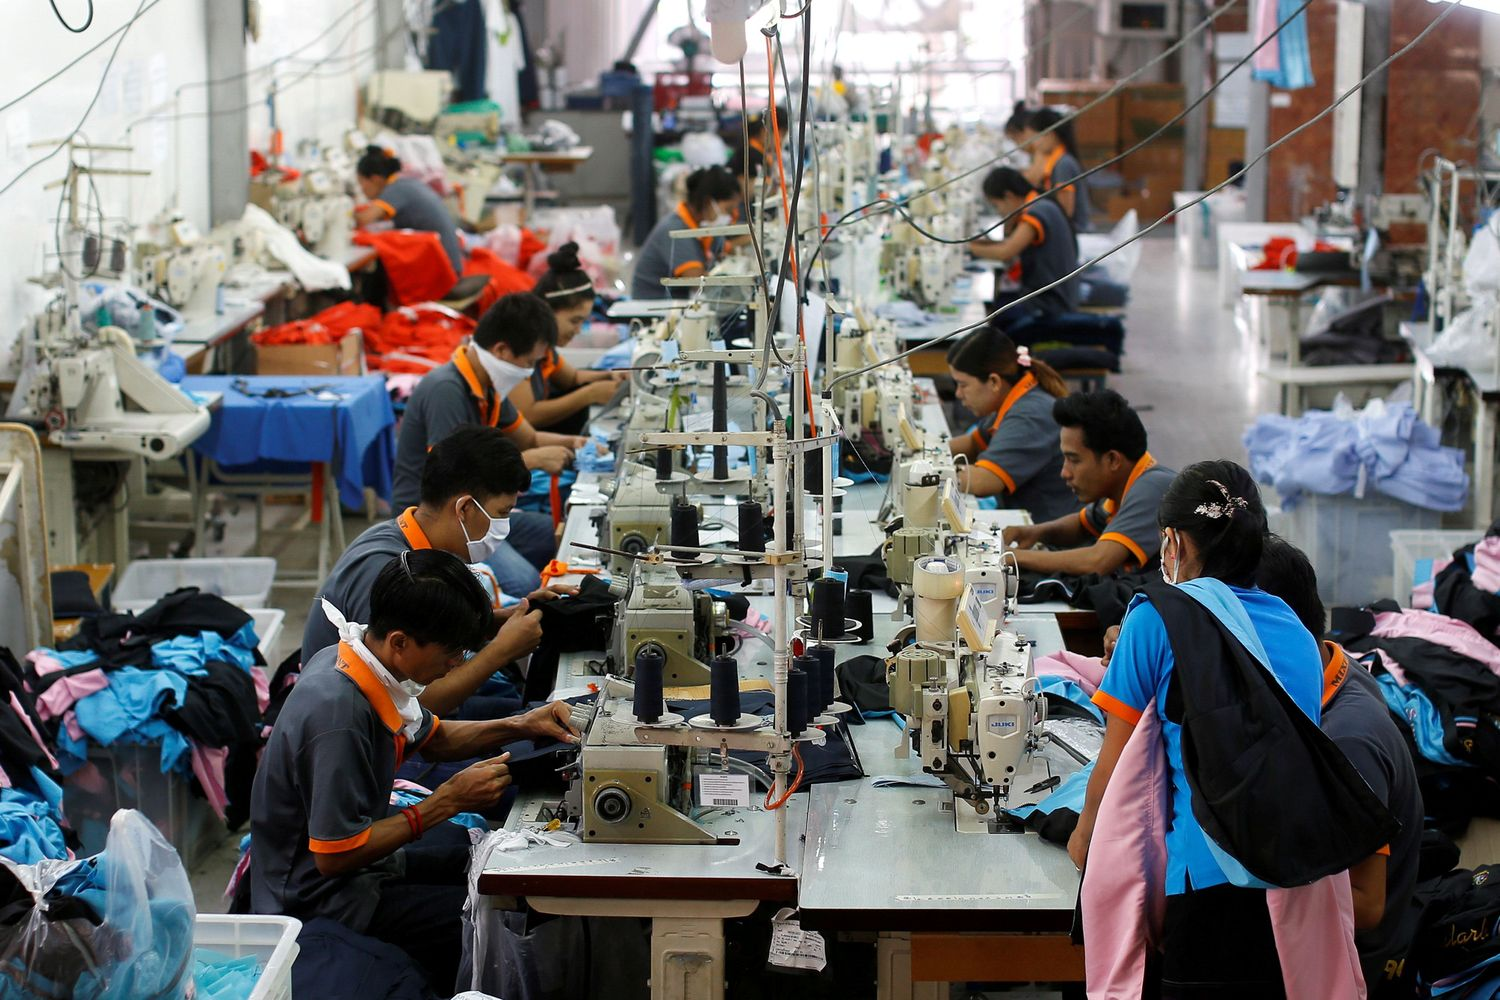 Labourers work at a garment factory in Bangkok. (Reuters file photo)